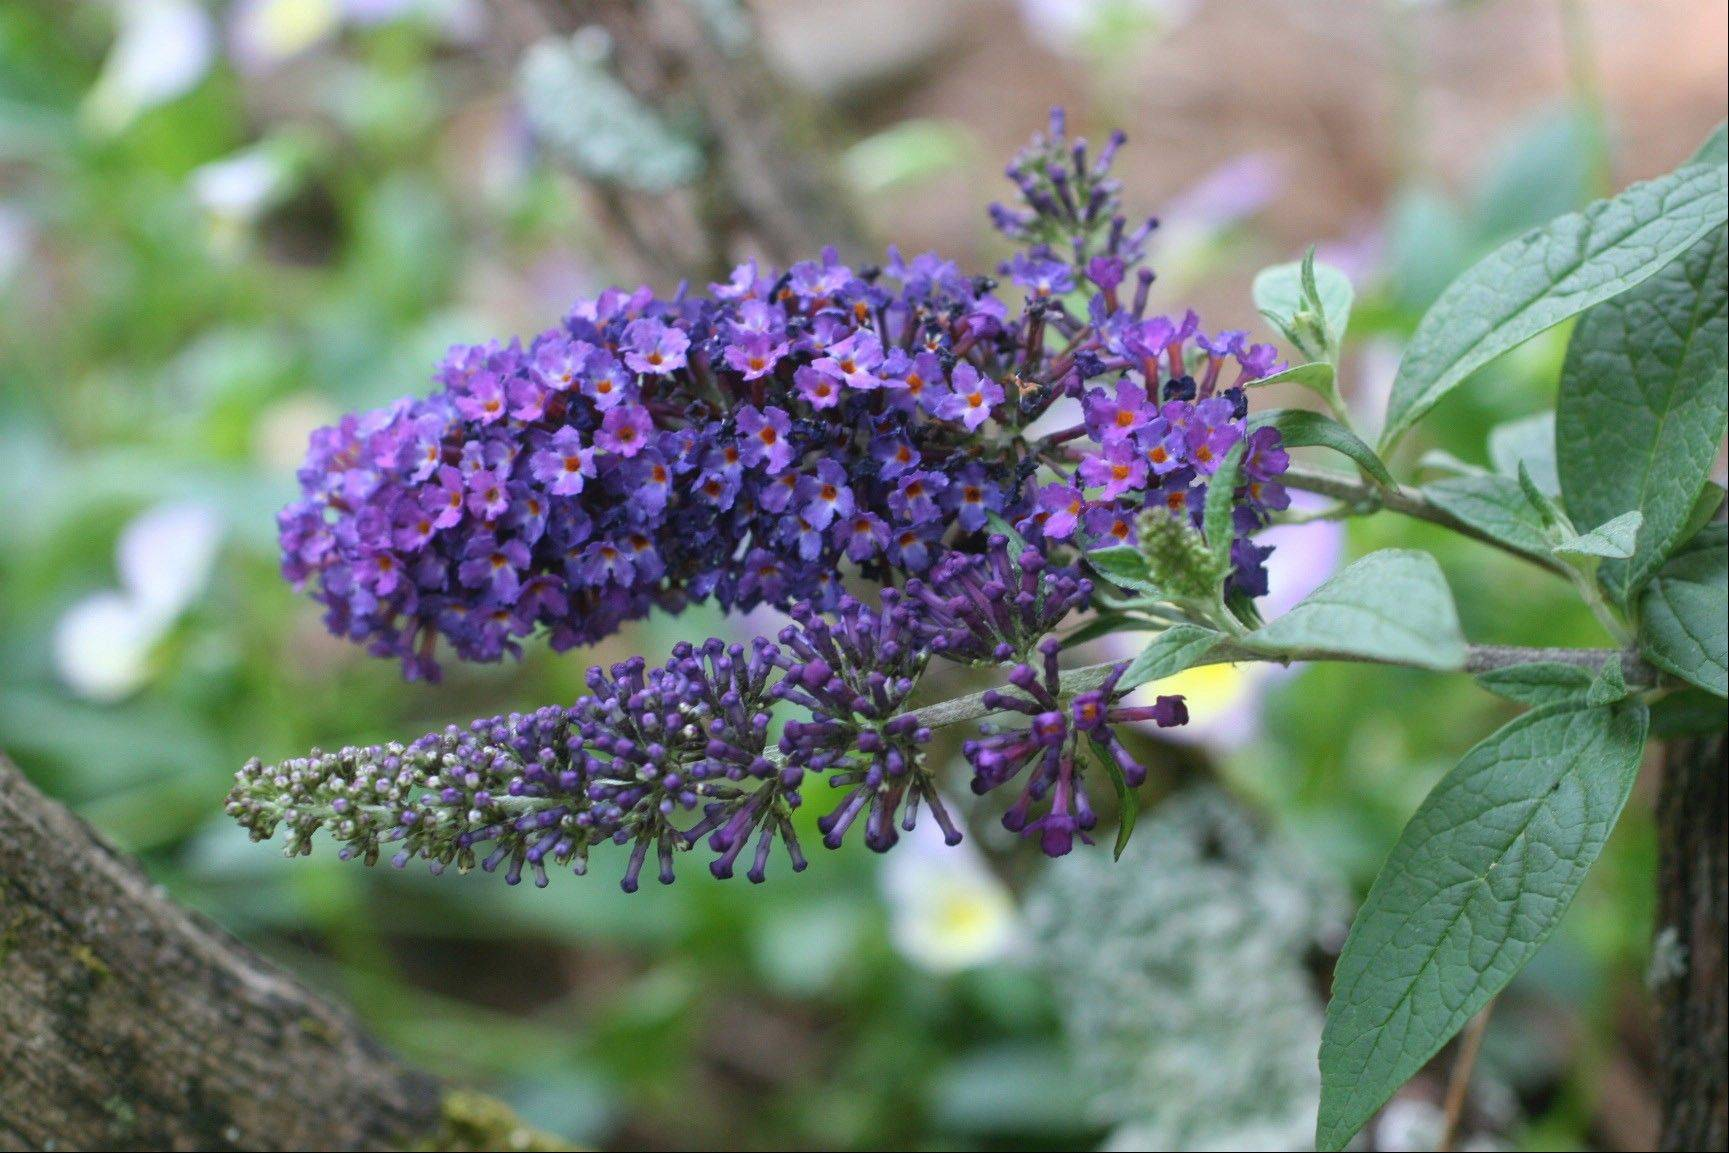 The butterfly bush is a pollinator-attracting, low-maintenance shrub that once established can tolerate weather extremes and gardener neglect.